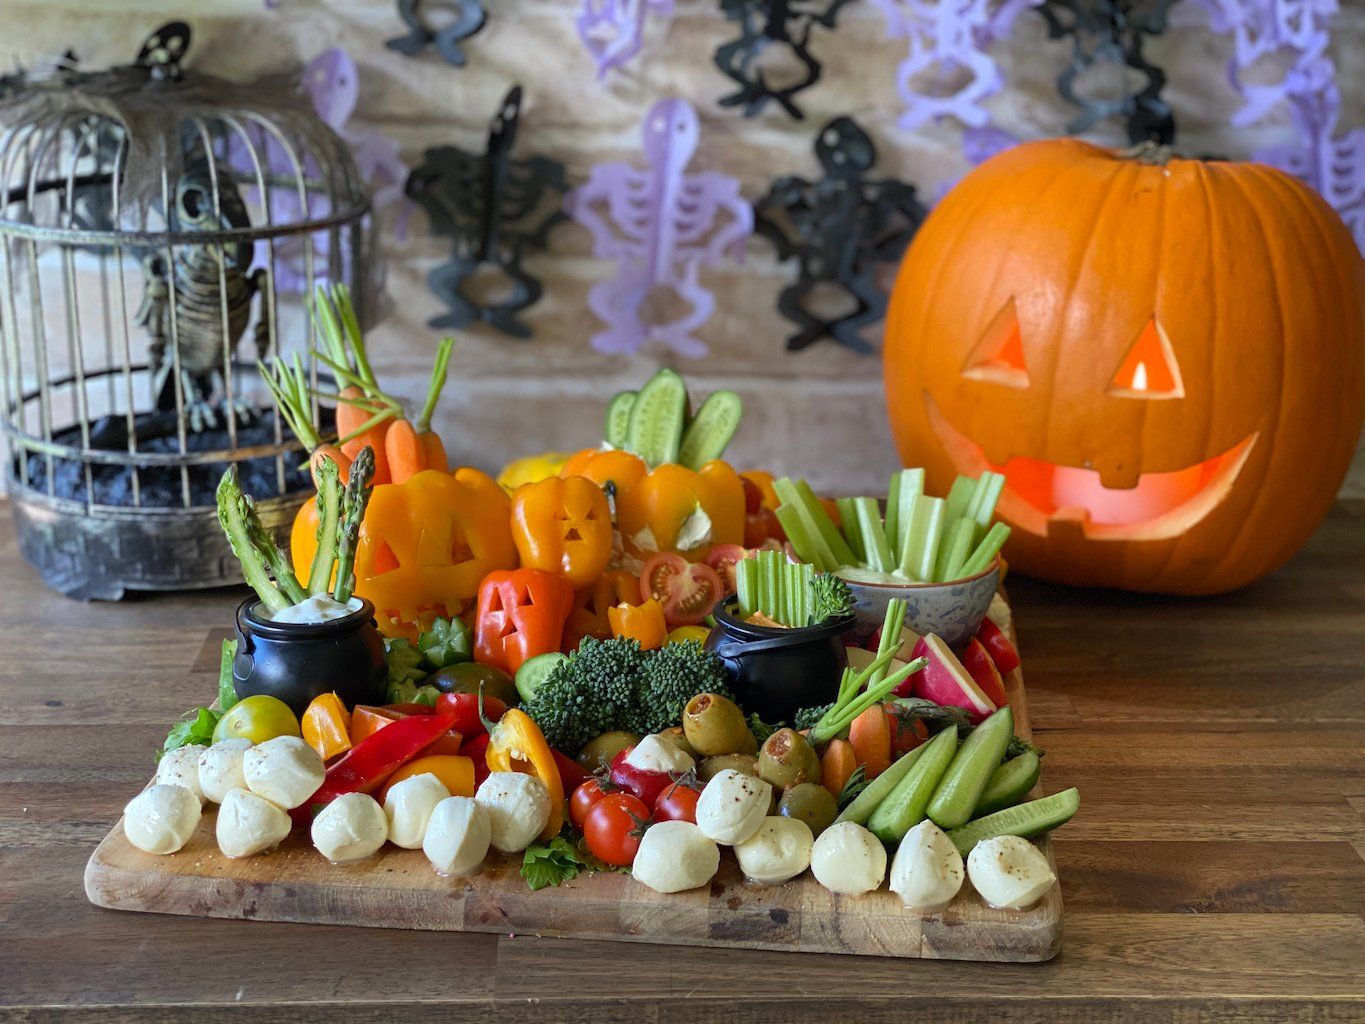 Healthy Halloween 6 | Stay at Home Mum.com.au